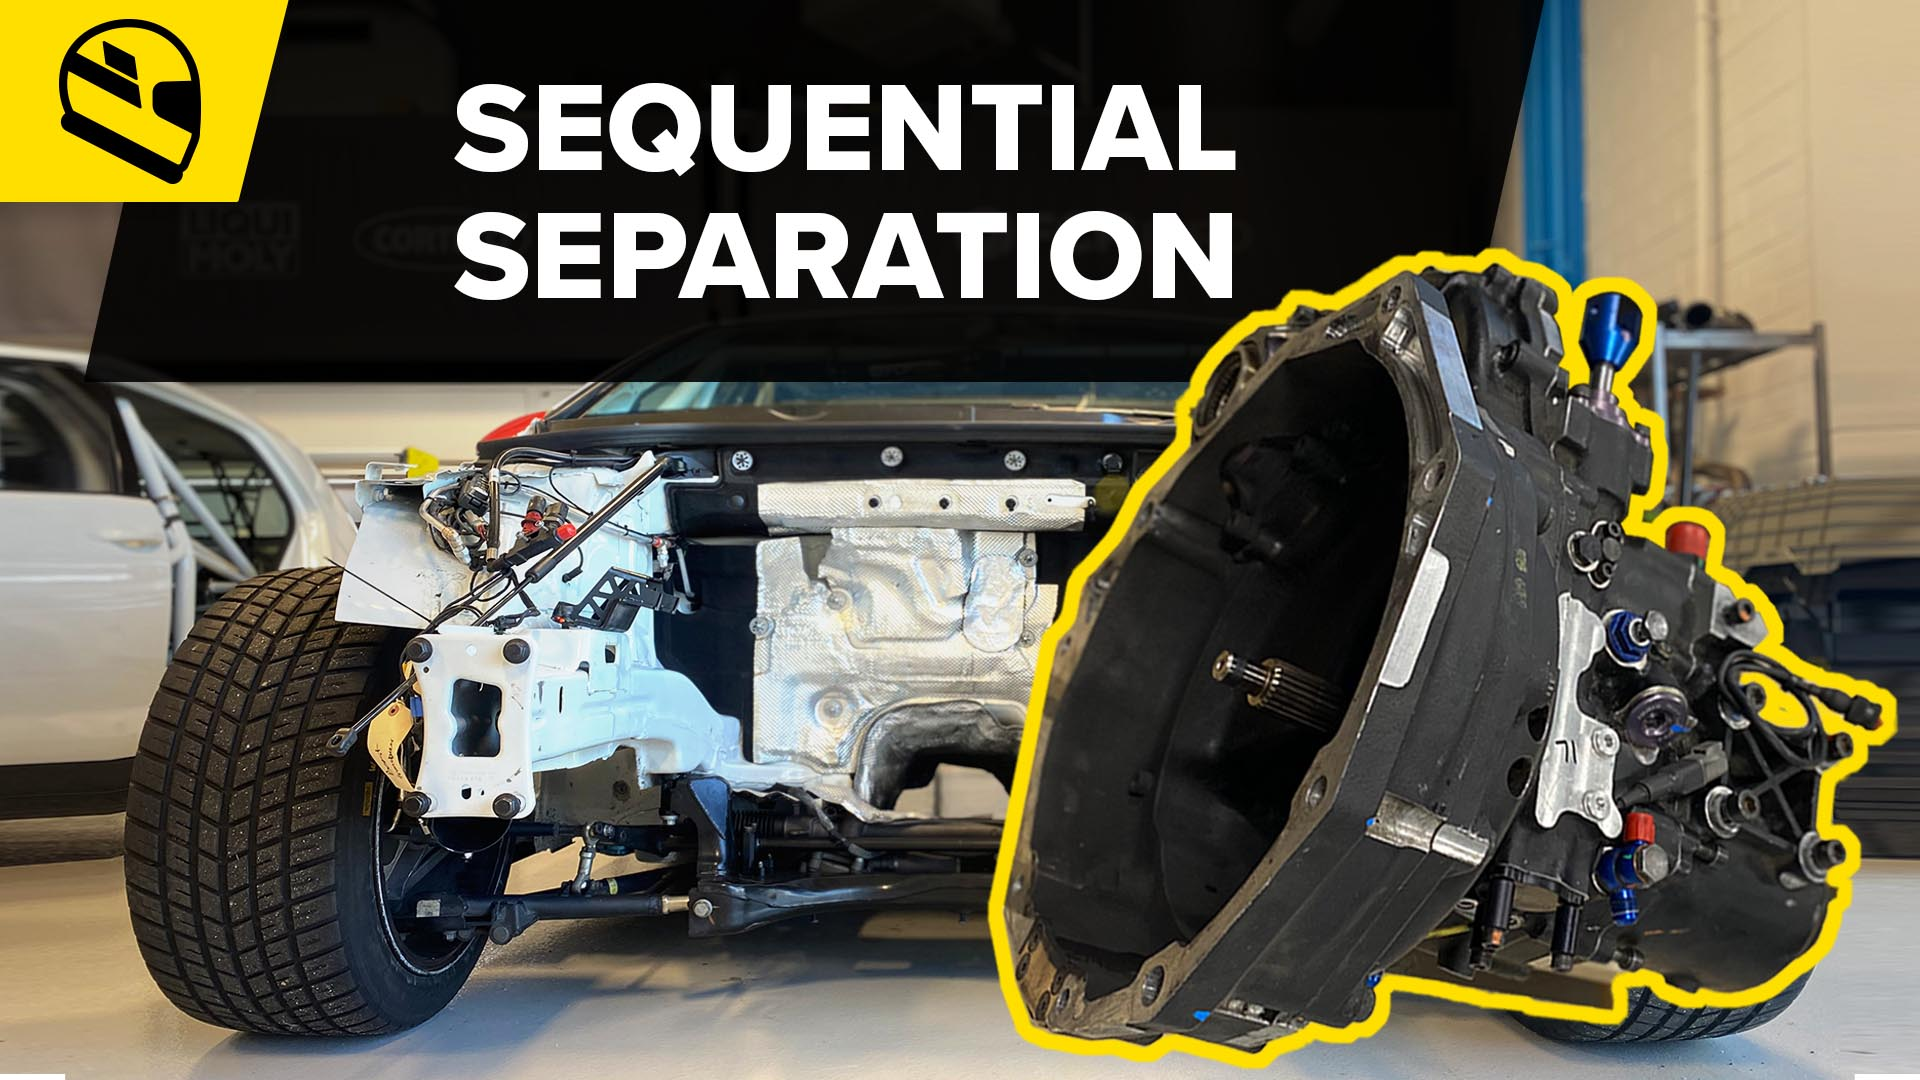 Motorsport Mondays - TCR Teardown: Day 5 - Sequential Separation